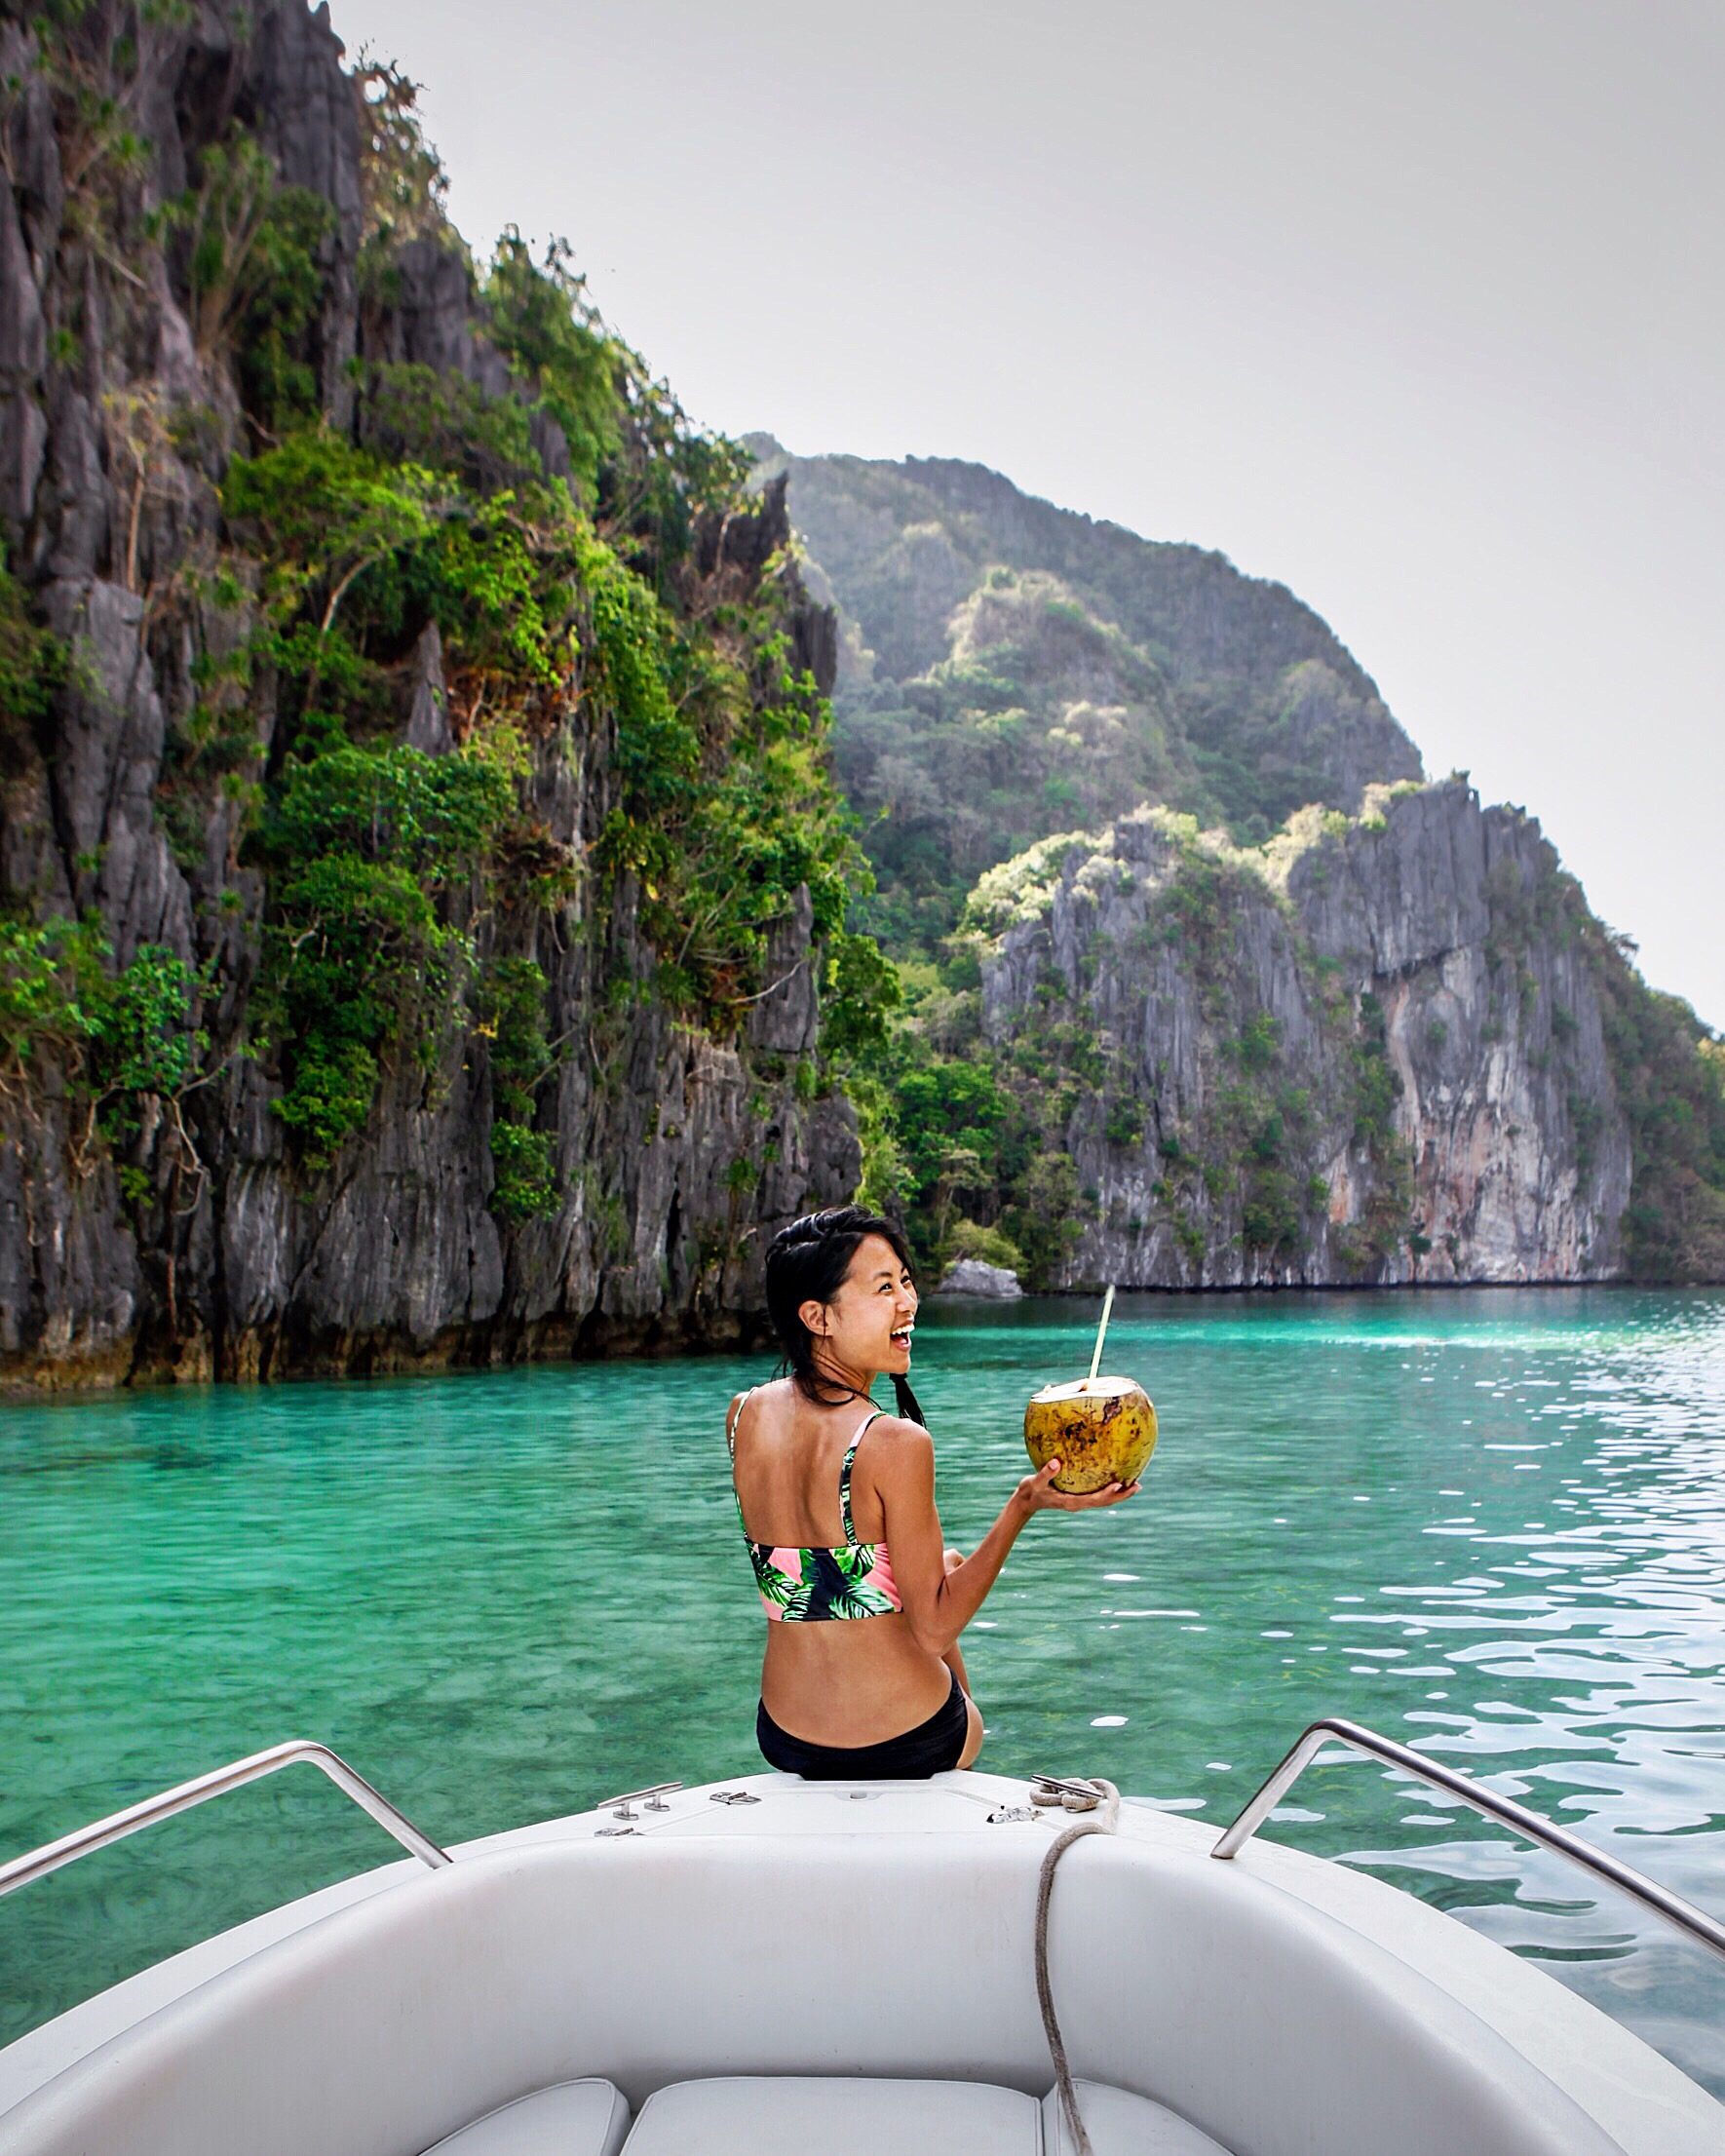 El Nido - Some of the most beautiful islands in the world. You come here for the endless turquoise waters, relaxing island life, fresh seafood, water activities, high visibility and warm waters for diving, natural wonders and beautiful beaches.